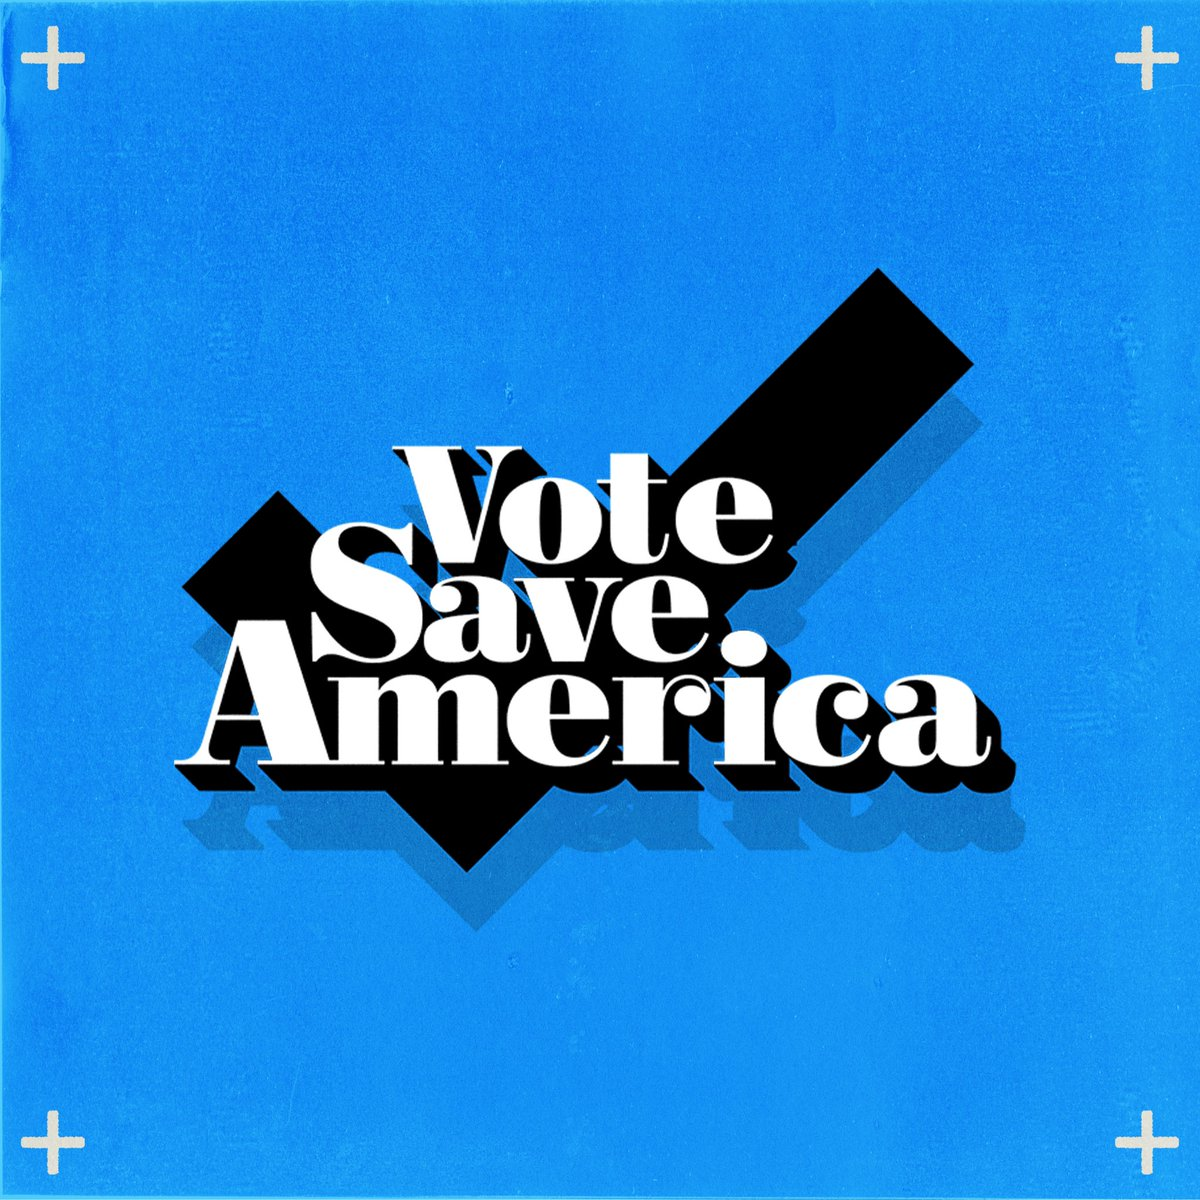 100% of profits from this range will benefit @votesaveamerica's featured organizations, which were carefully selected to have the biggest impact at the polls and beyond. VSA is a great resource, providing the tools and information you need on election day ⭐️